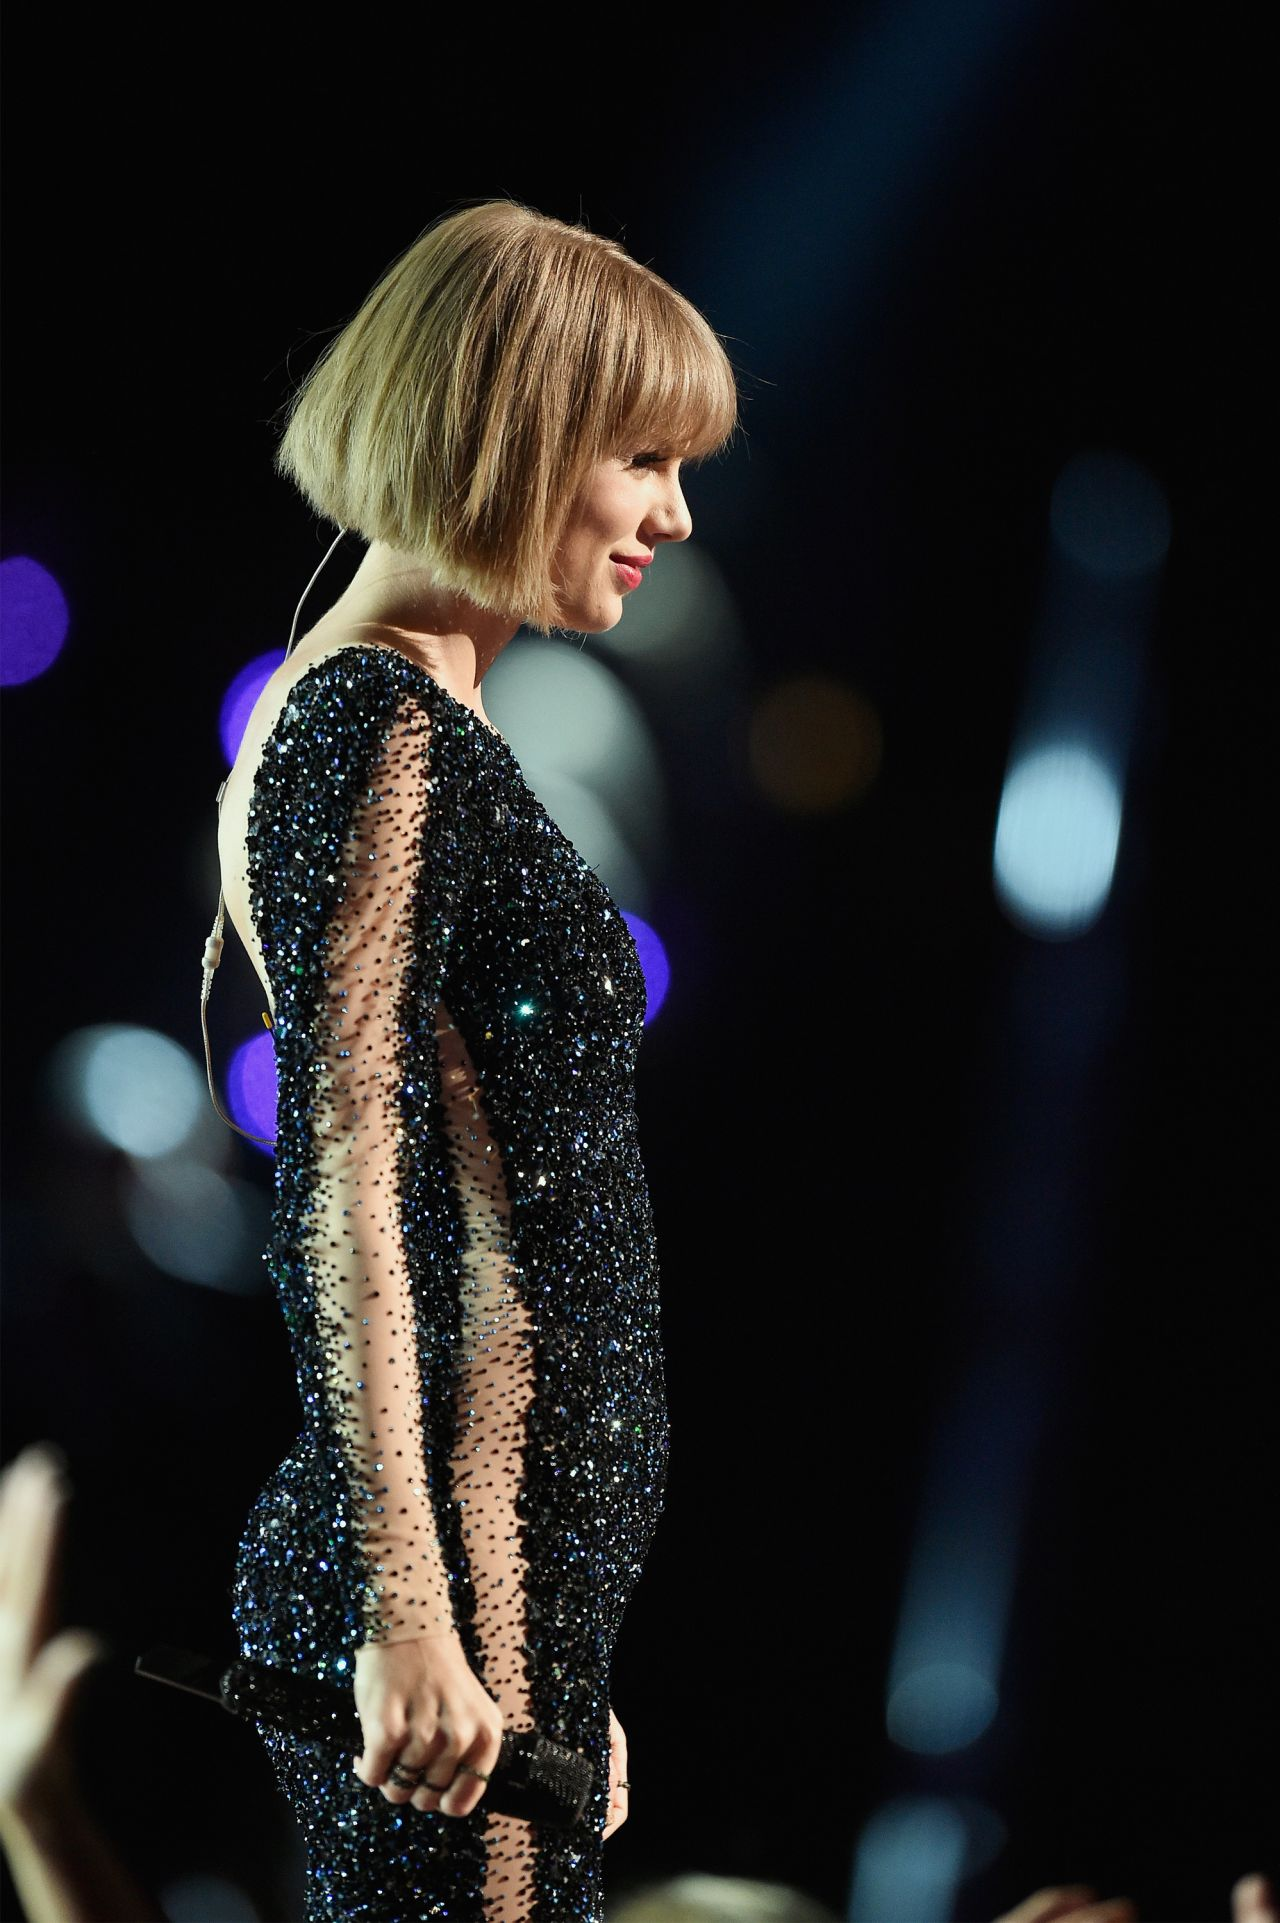 Taylor Swift Performs At Grammy Awards 2016 In Los Angeles CA